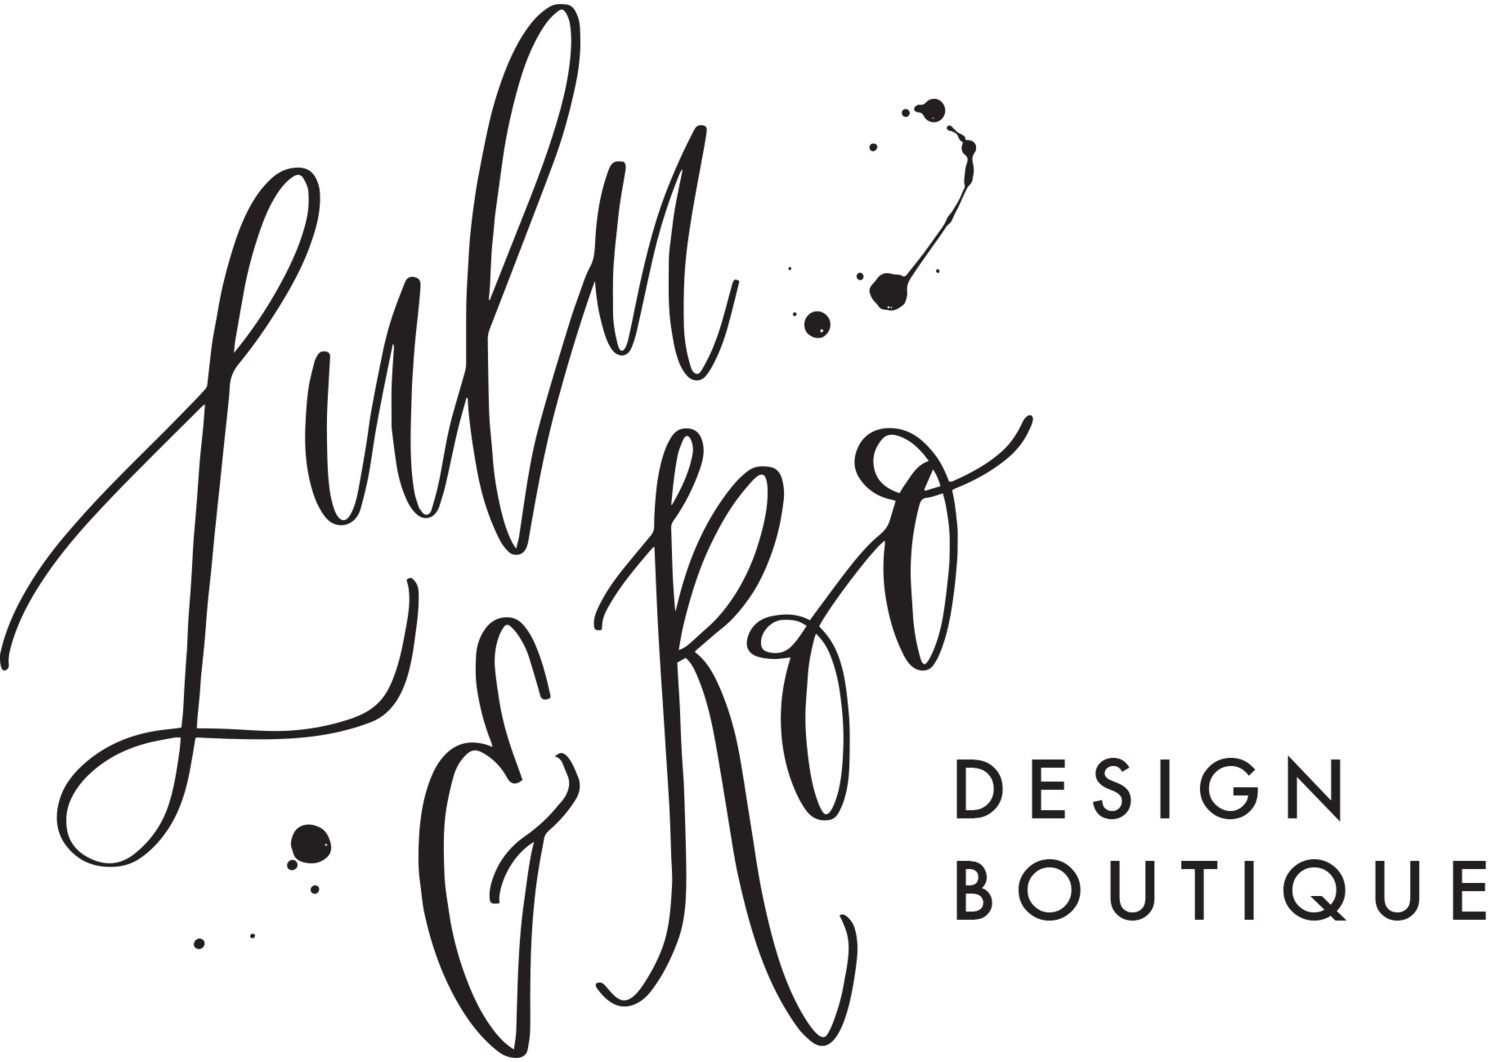 Lulu & Roo Design Boutique